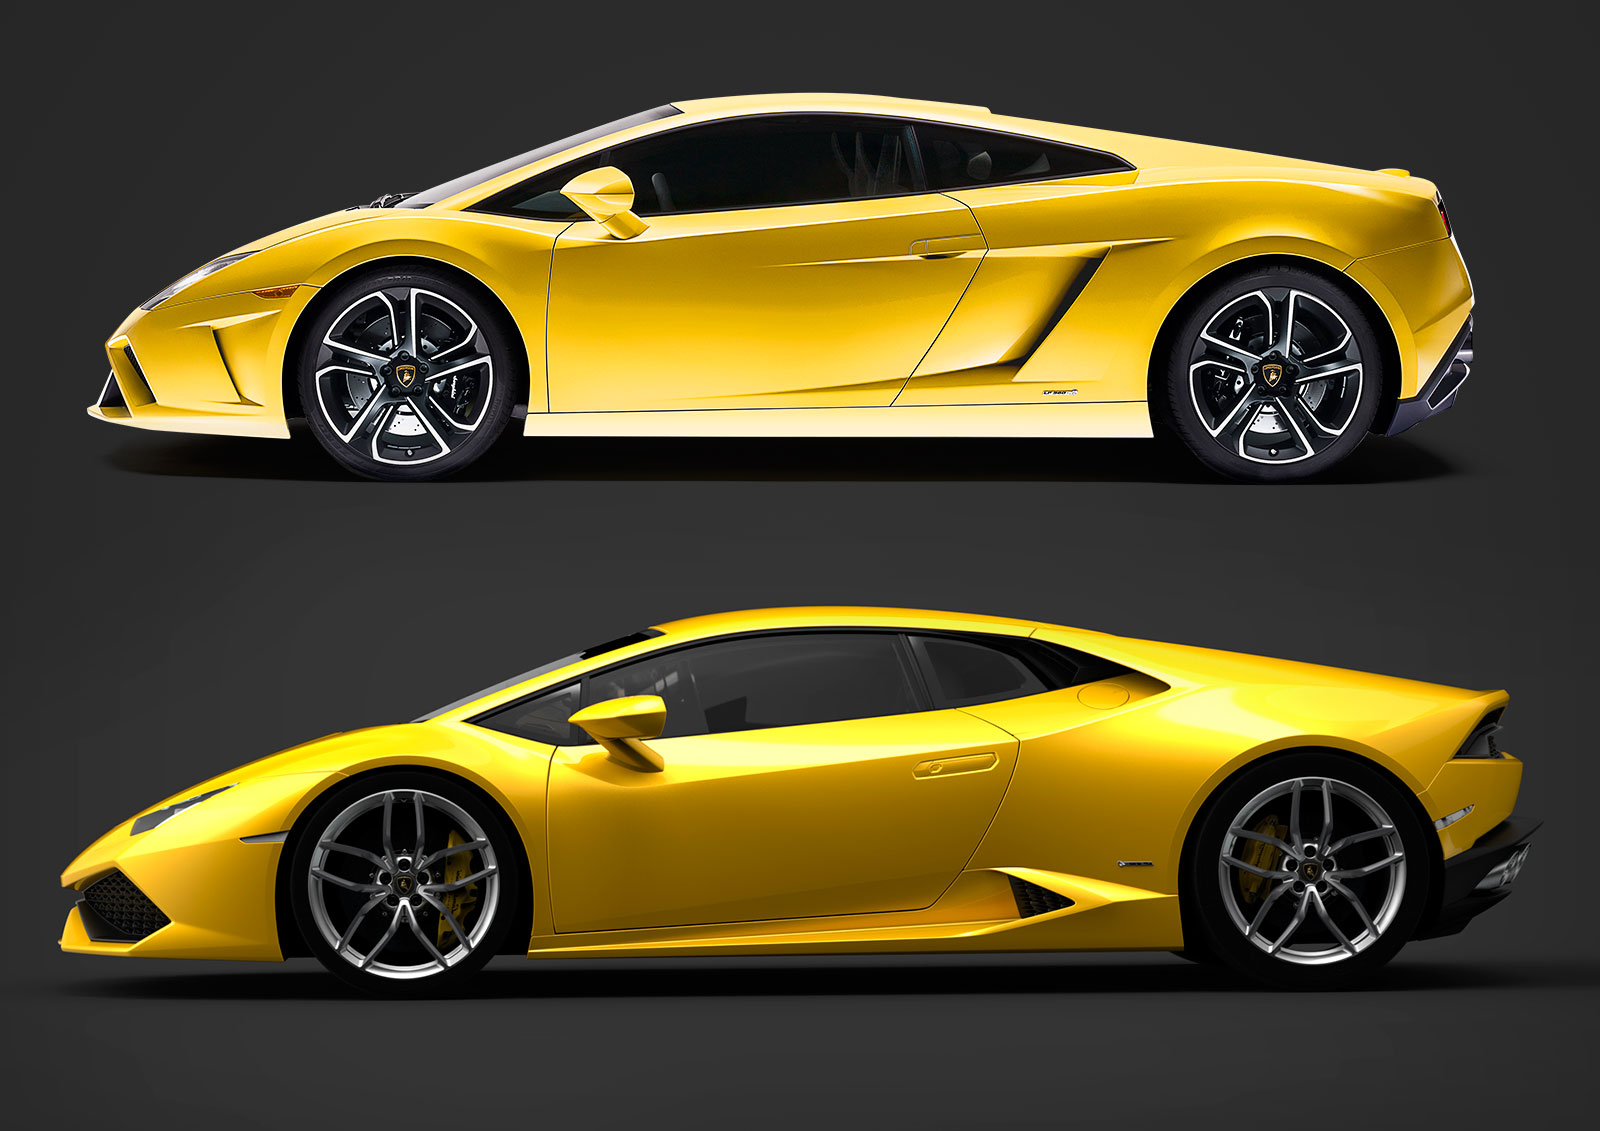 lamborghini huracan vs gallardo price gallardo vs huracan. Black Bedroom Furniture Sets. Home Design Ideas